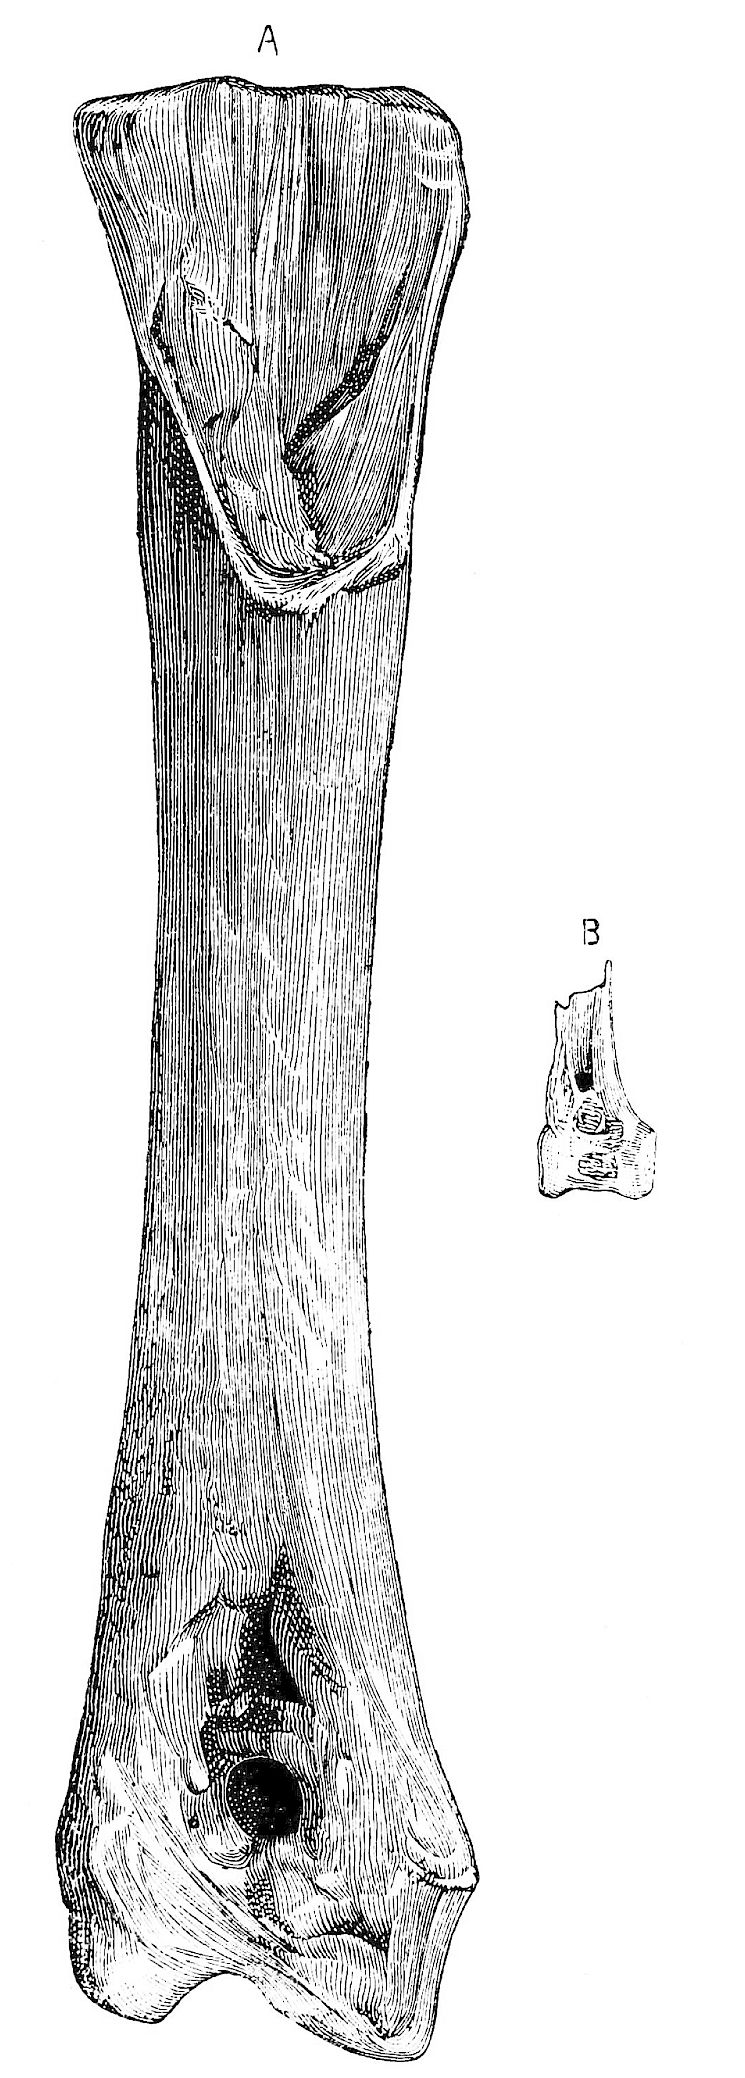 PSM V21 D482 Tibia size comparison of a gastornis and a swan.jpg